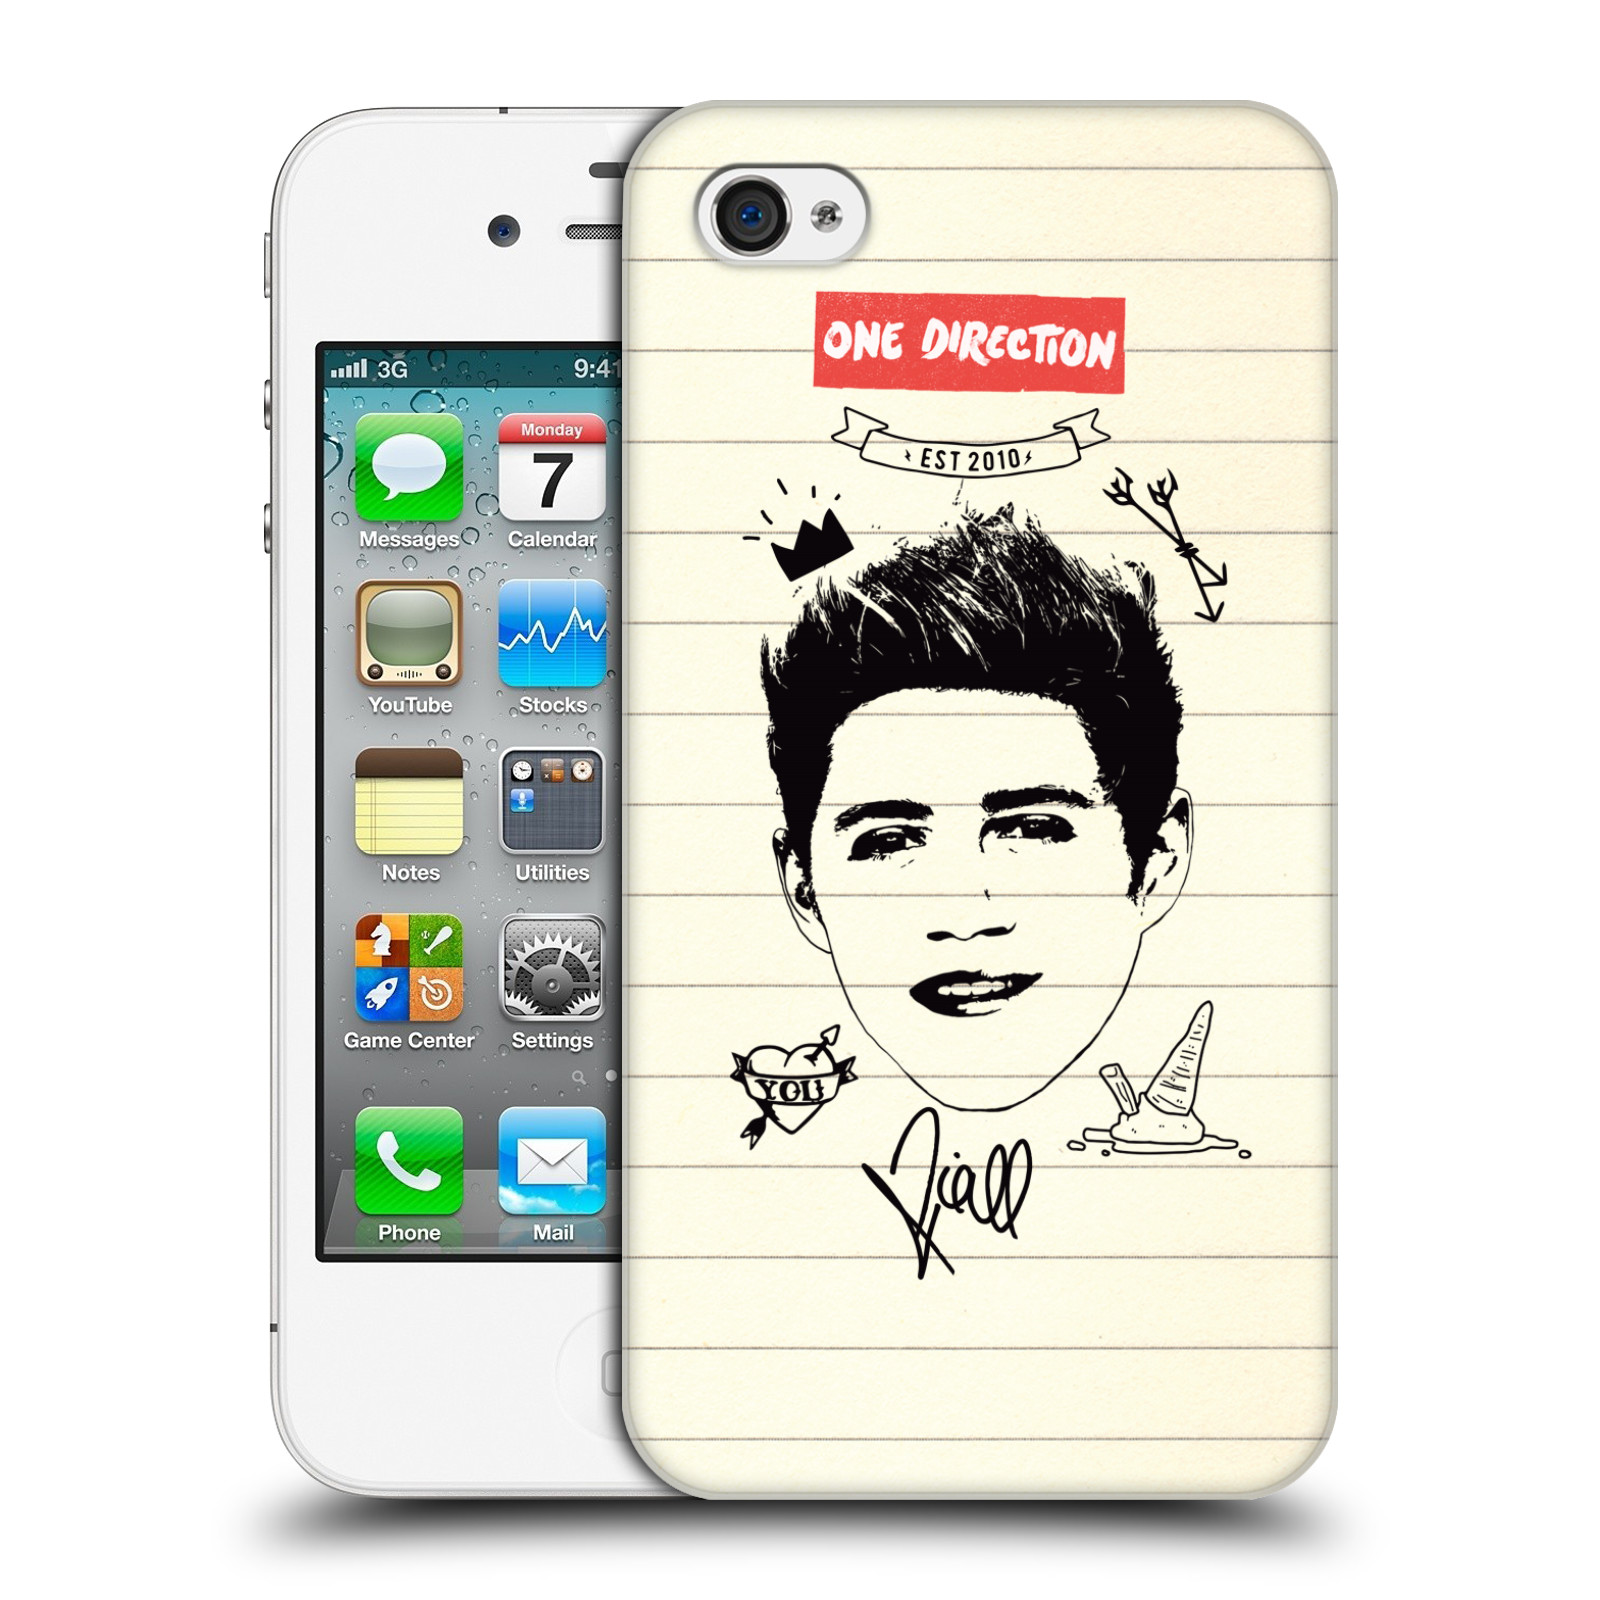 Ufficiale-One-Direction-1D-Notebook-in-Stile-Azteco-HARD-BACK-CASE-per-APPLE-IPHONE-4S